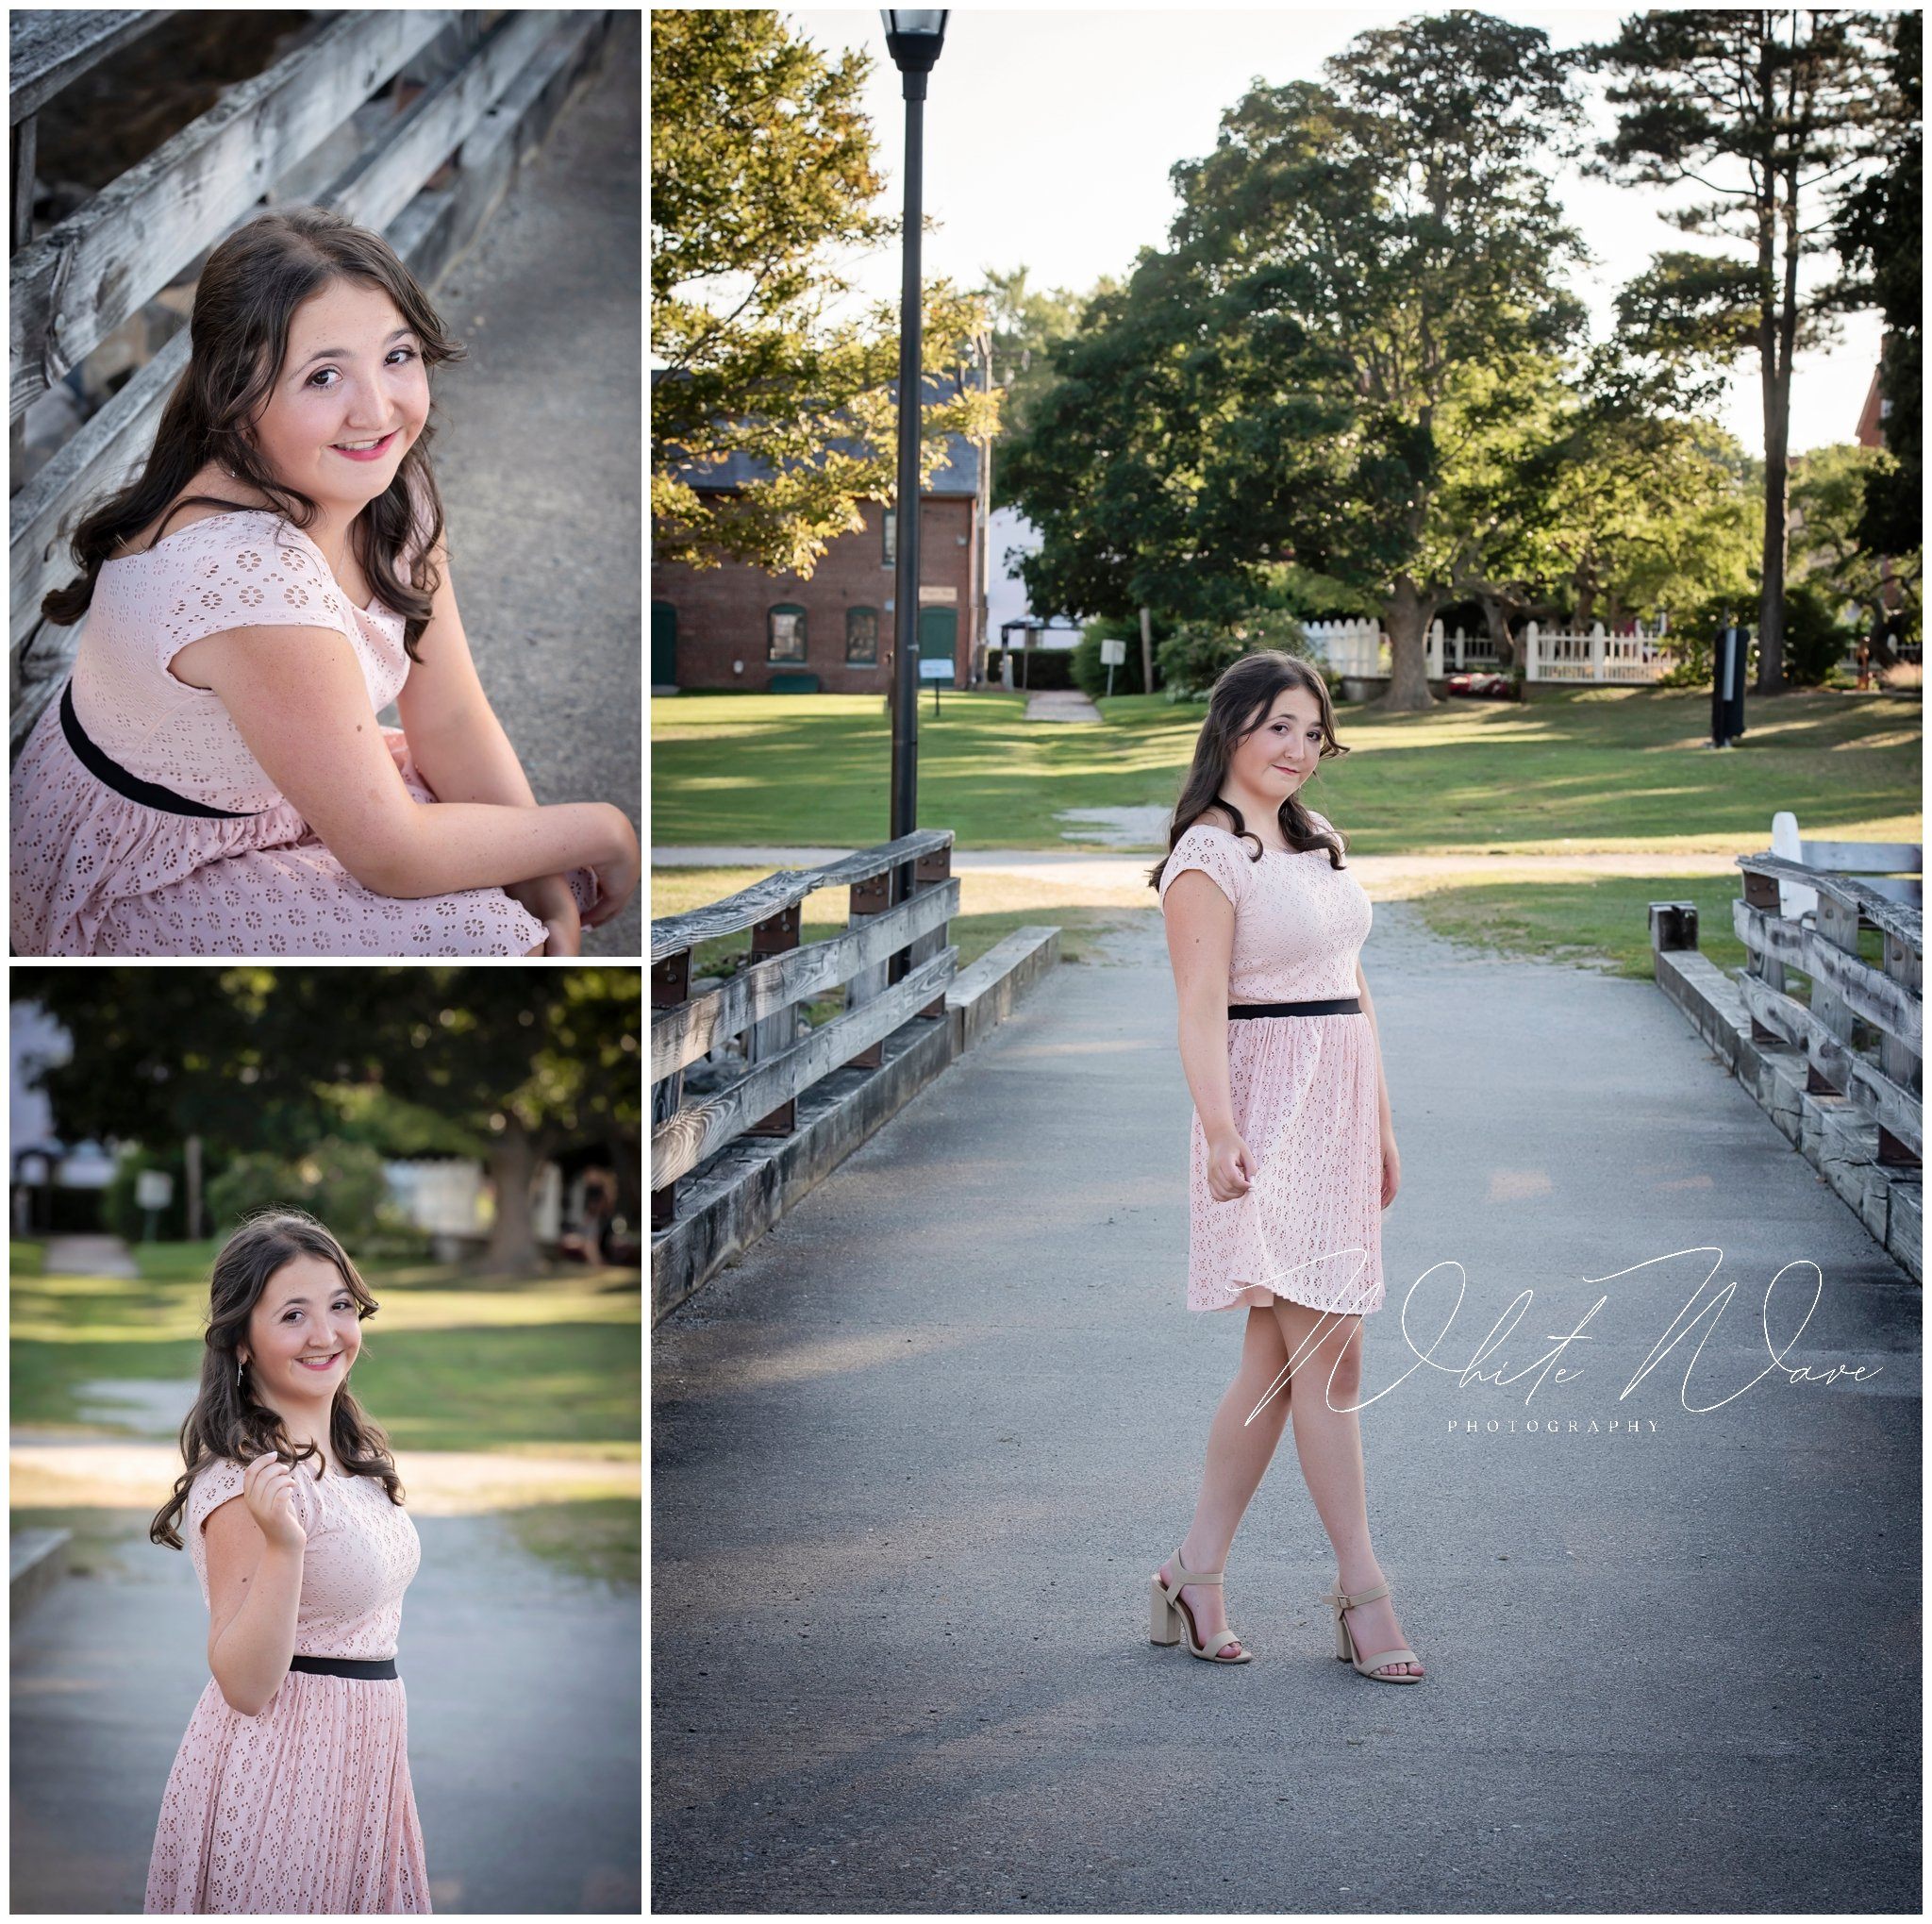 Portsmouth NH Senior Photographer, Jennie Bishop is NOW BOOKING Summer/Fall Senior Portrait Session